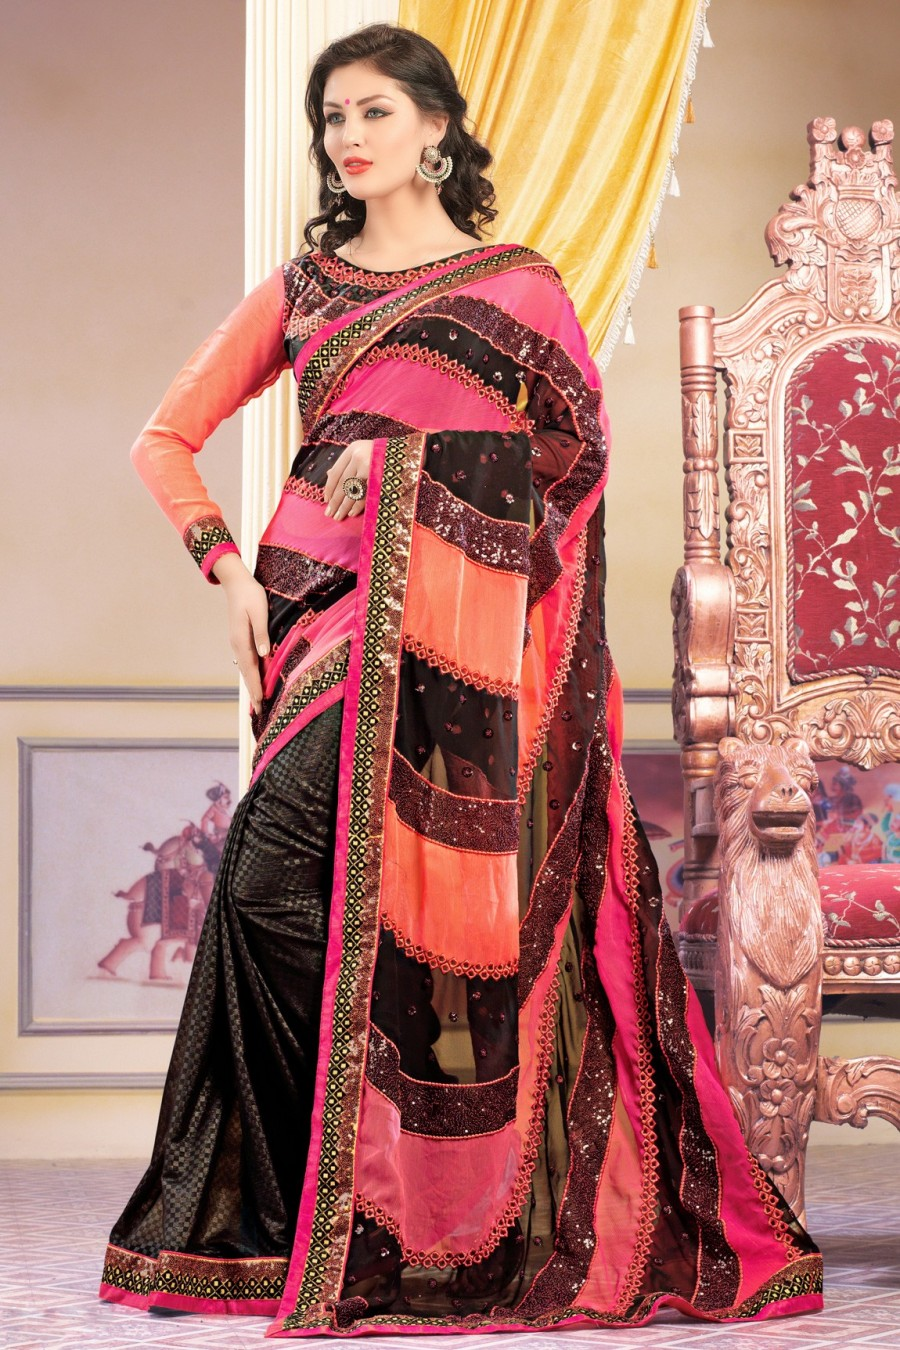 Buy Black Georgette Embroidered Saree with Dupioni Blouse Online